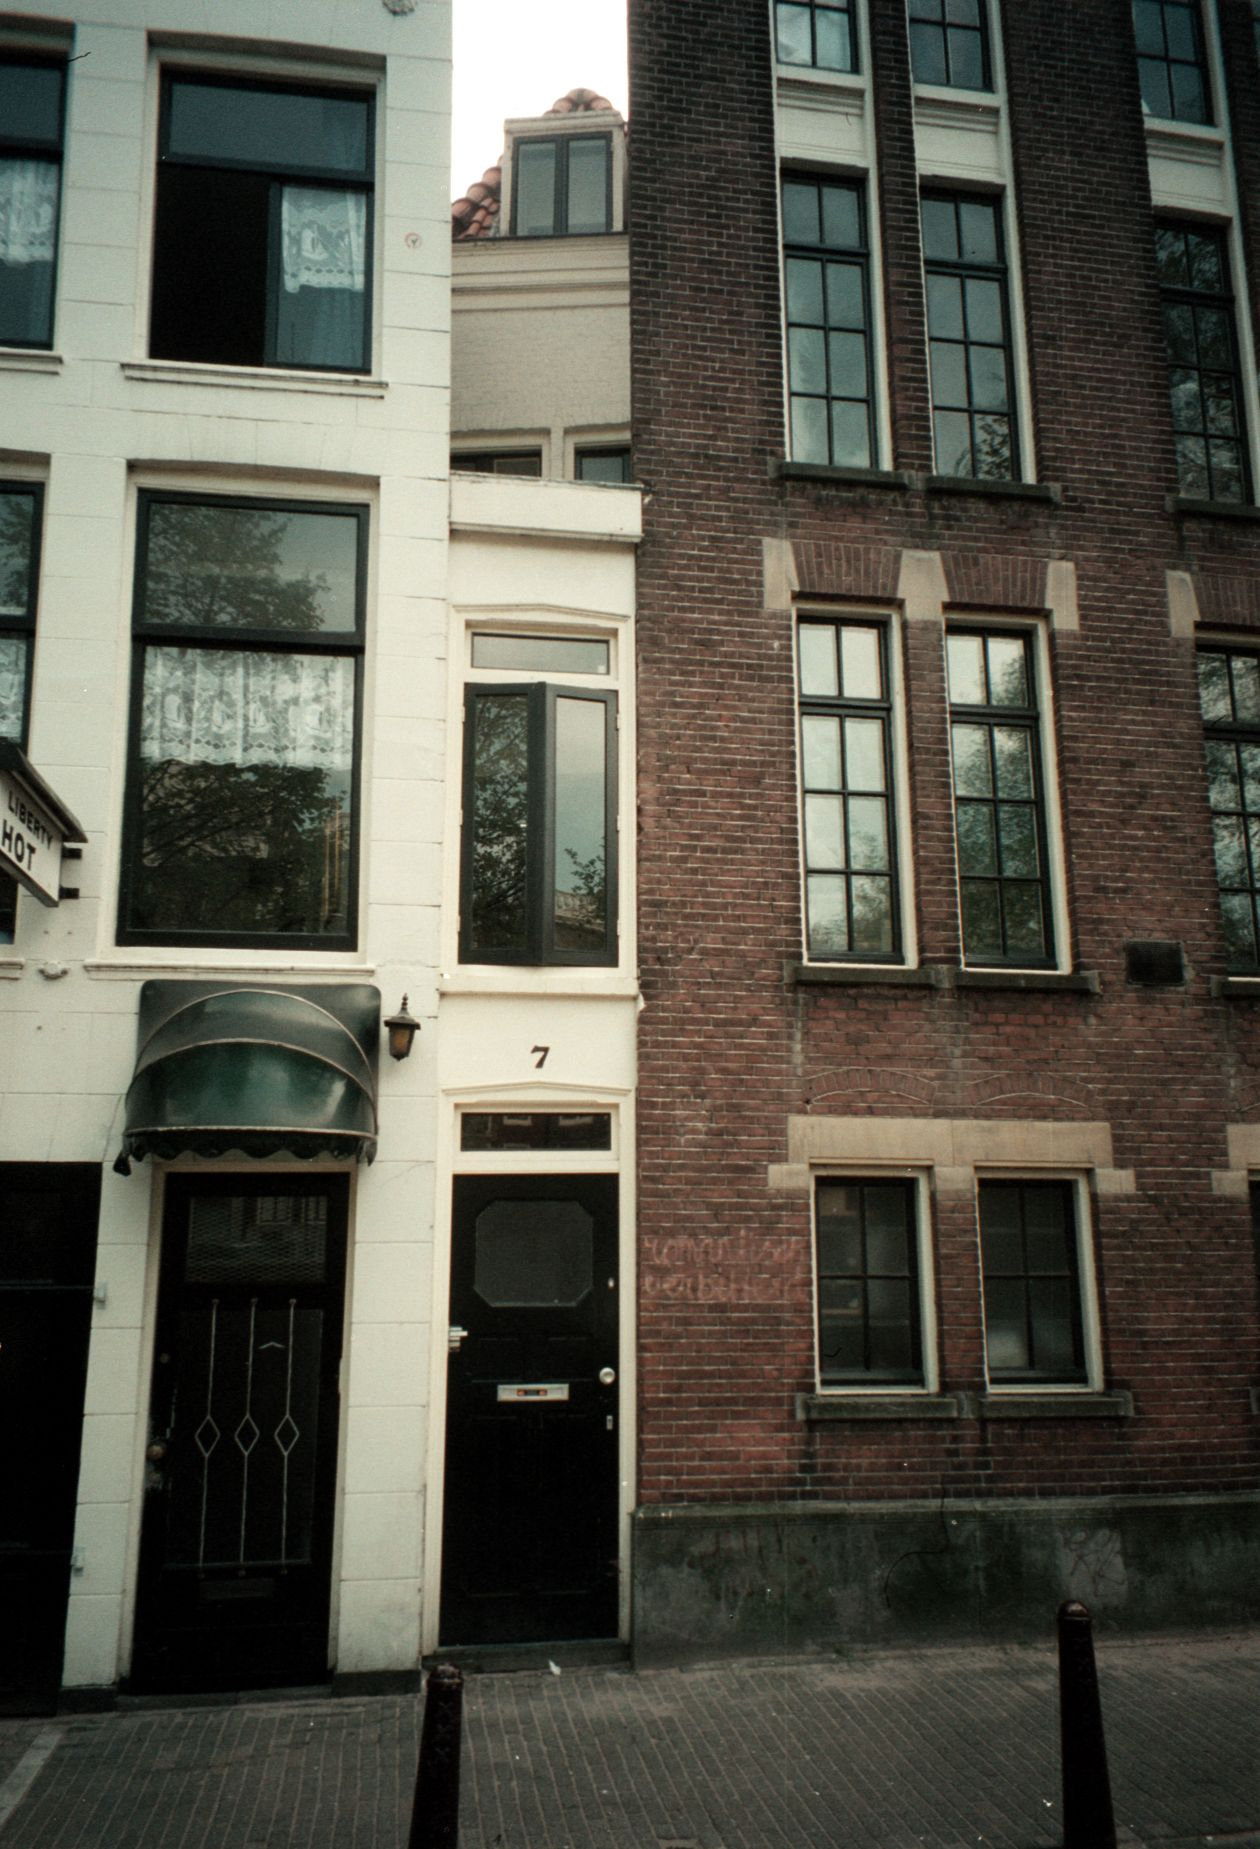 Most Narrow House In The World Singel 7 Amsterdam Amsterdam Houses Holland Cities Amsterdam Canals